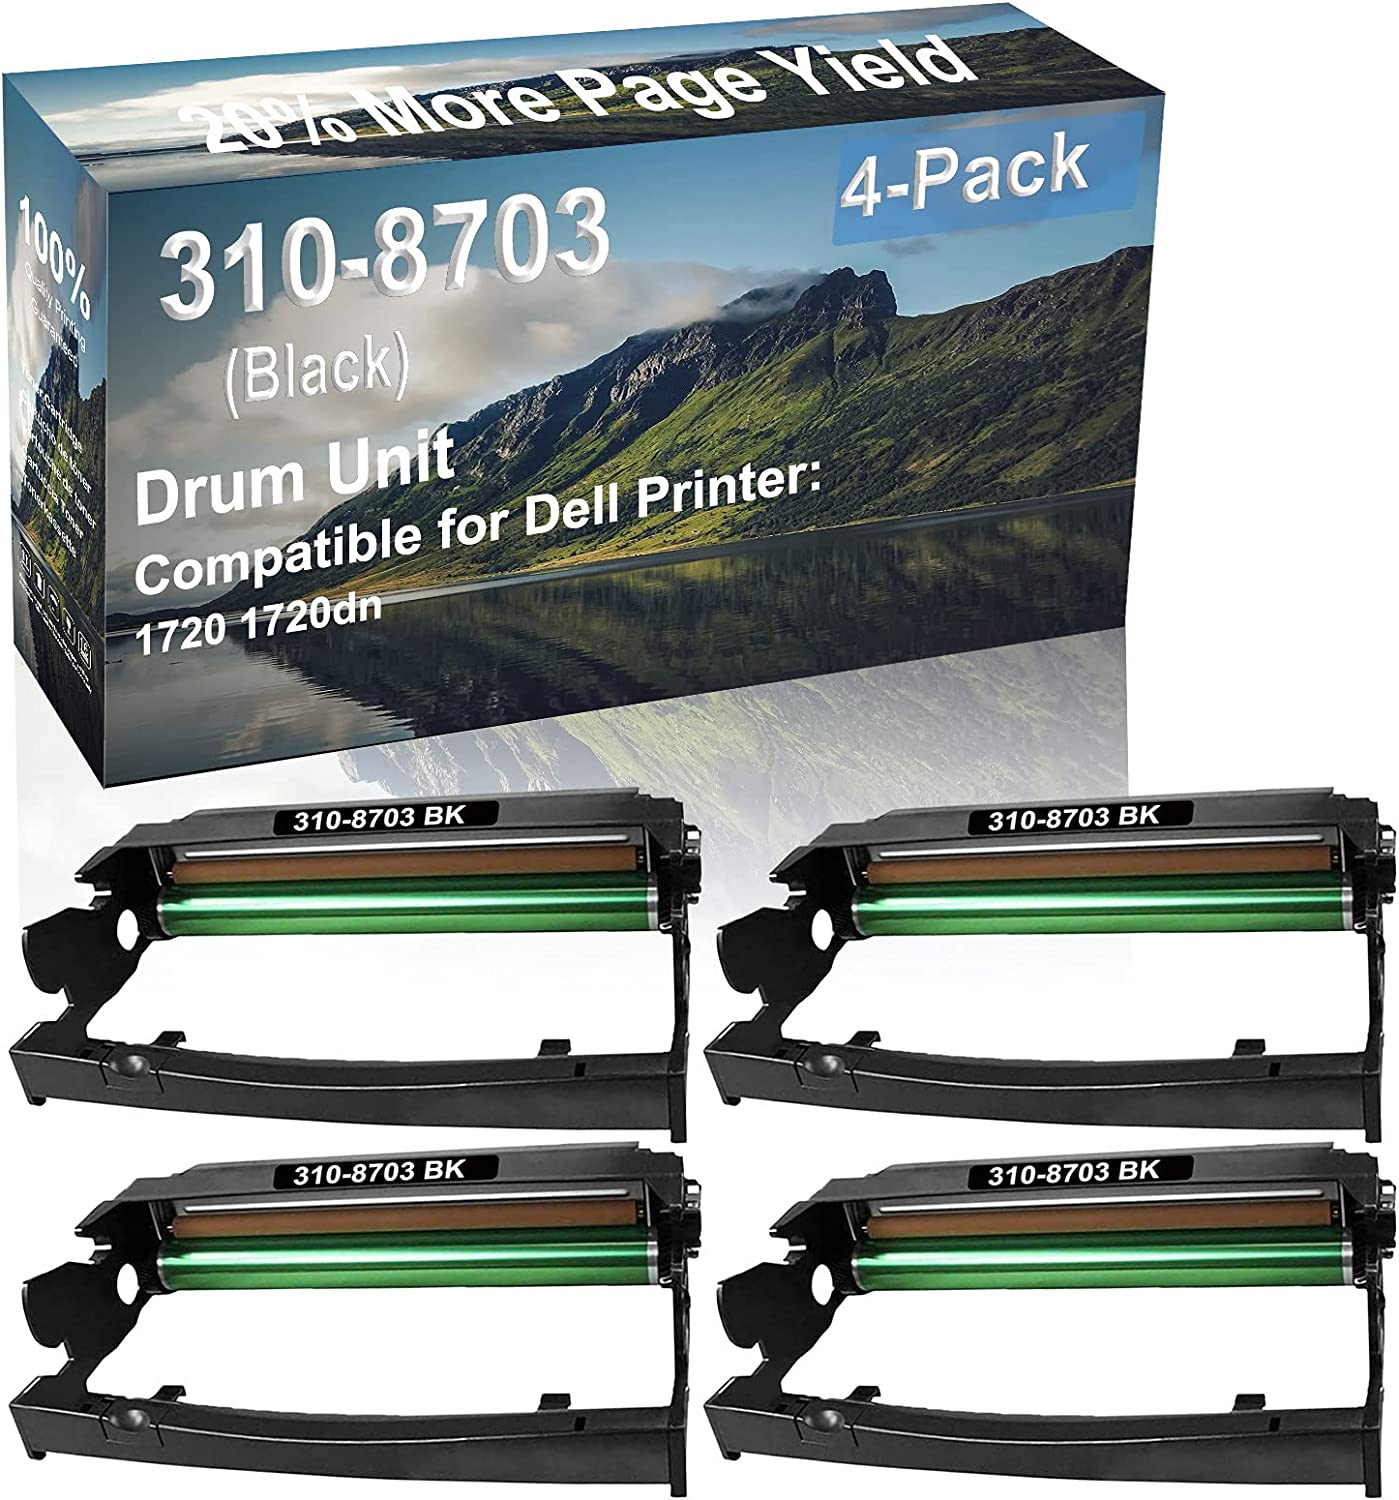 4-Pack Compatible 310-8703 Drum Kit use for Dell 1720 1720dn Printer (Black)